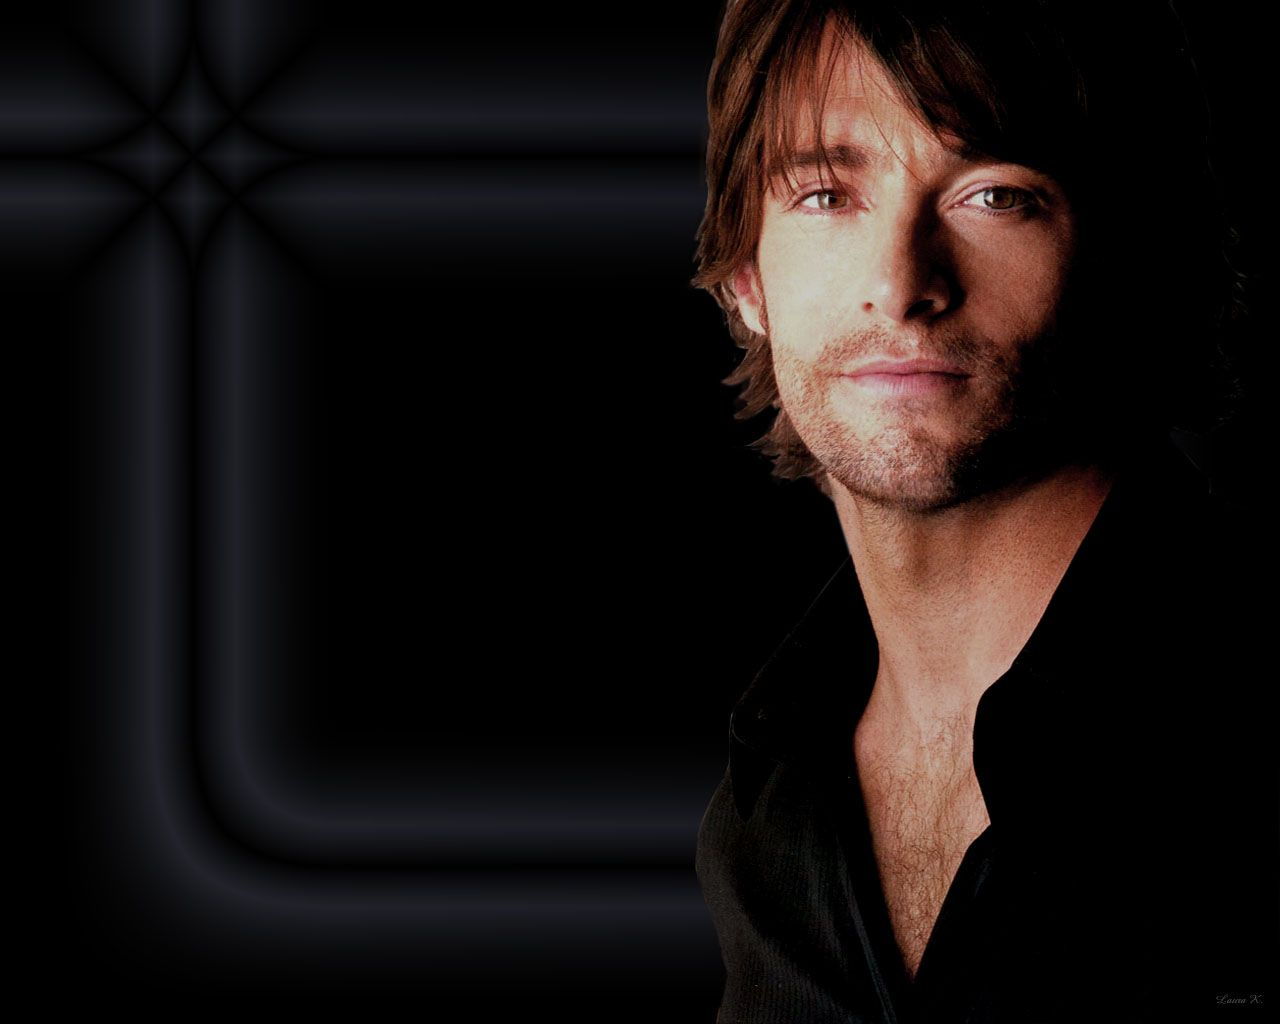 Hugh Jackman Wallpaper In Van Helsing Hugh jackman wallpaper